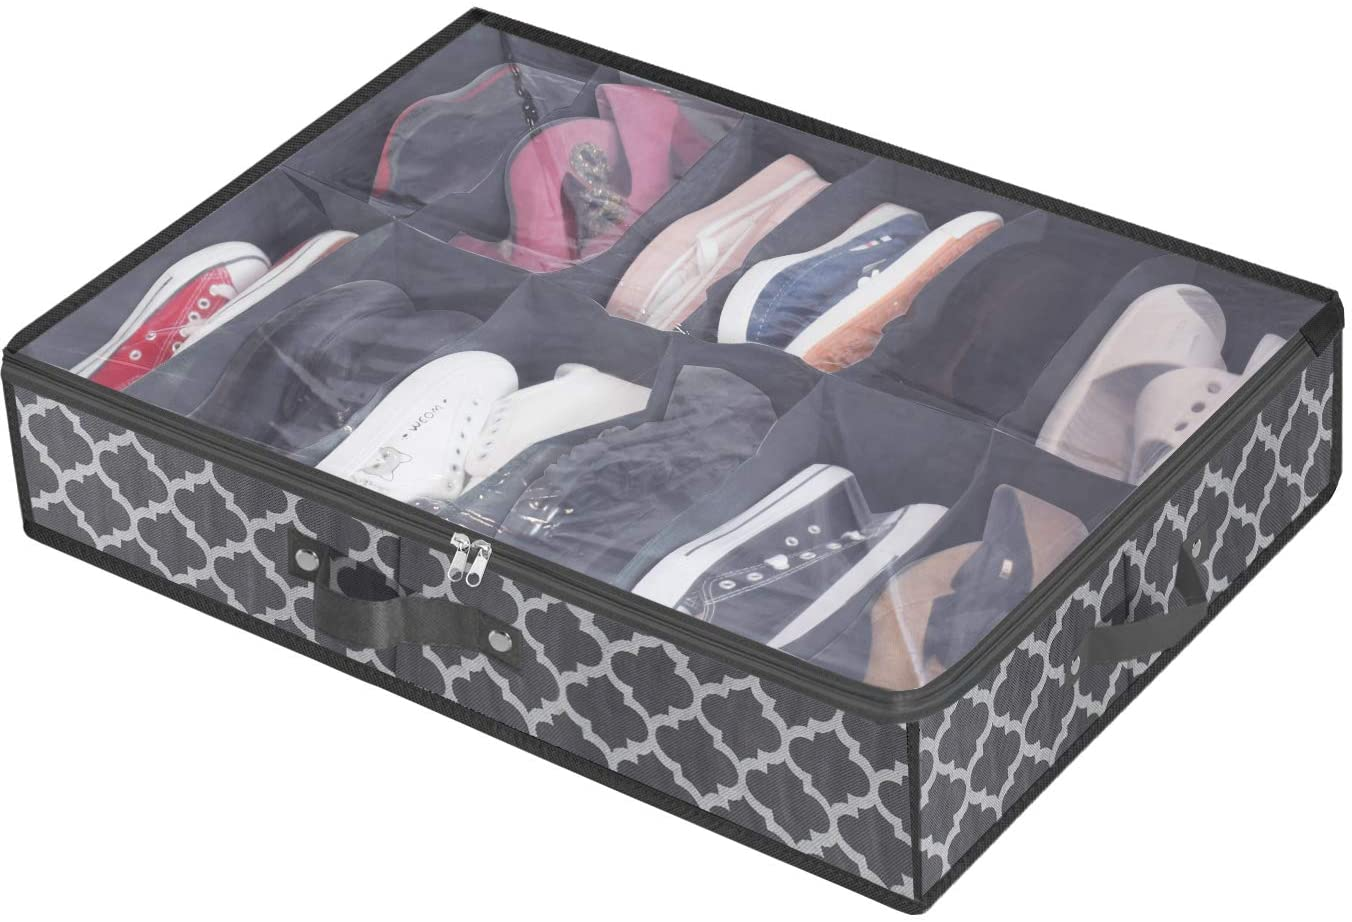 Shoe Organizer Under Bed, Shoes Storage Containers Box (Fit 12 Pairs) with Sturdy and Breathable Materials for Sneakers,Clothes, Toys, Great Space Saver for Your Closet, Gray with Lantern Pattern